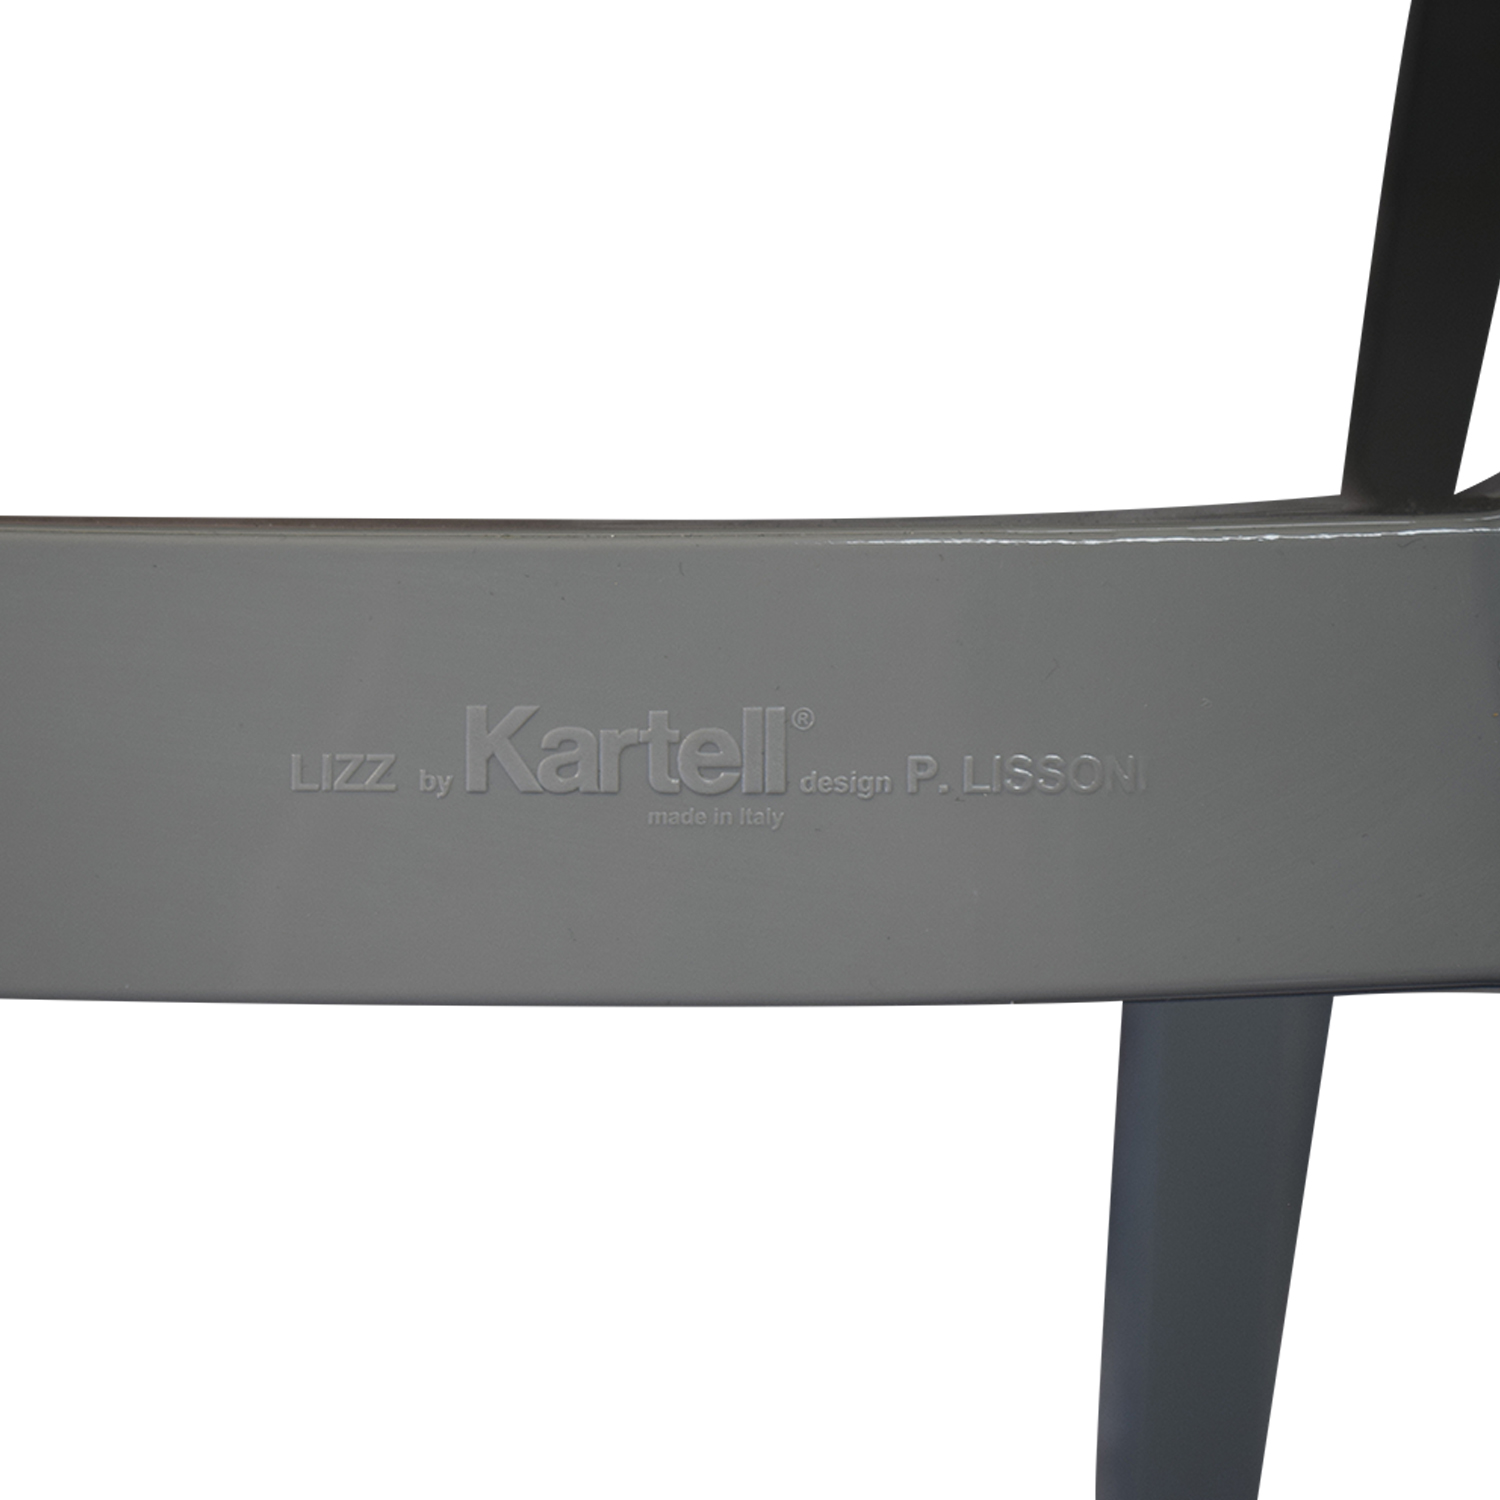 Kartell Kartell Lizz Chairs for sale